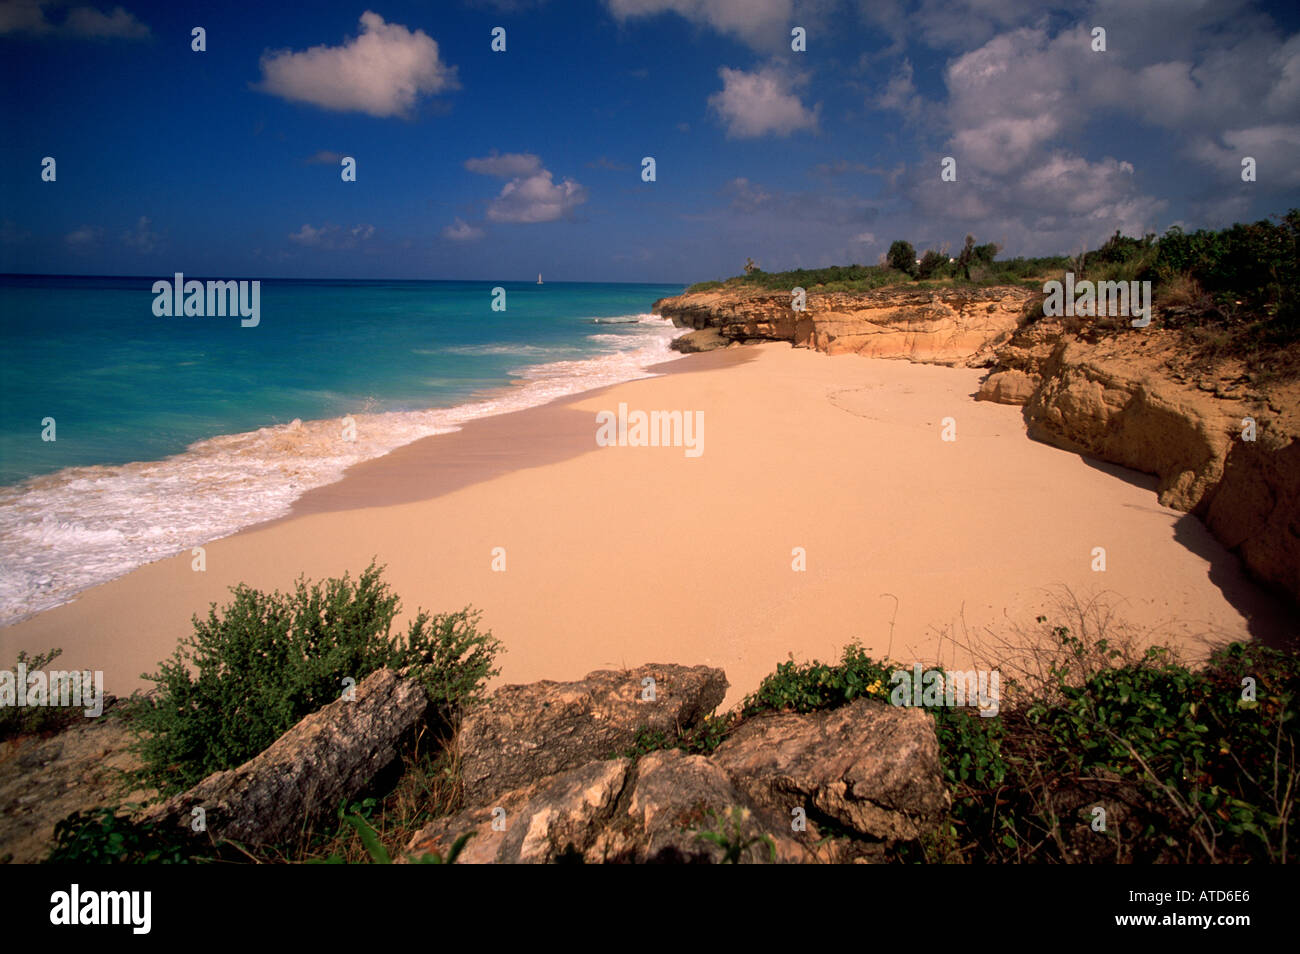 Waves wash onto Cupecoy beach on the Caribbean island of St Maarten - Stock Image